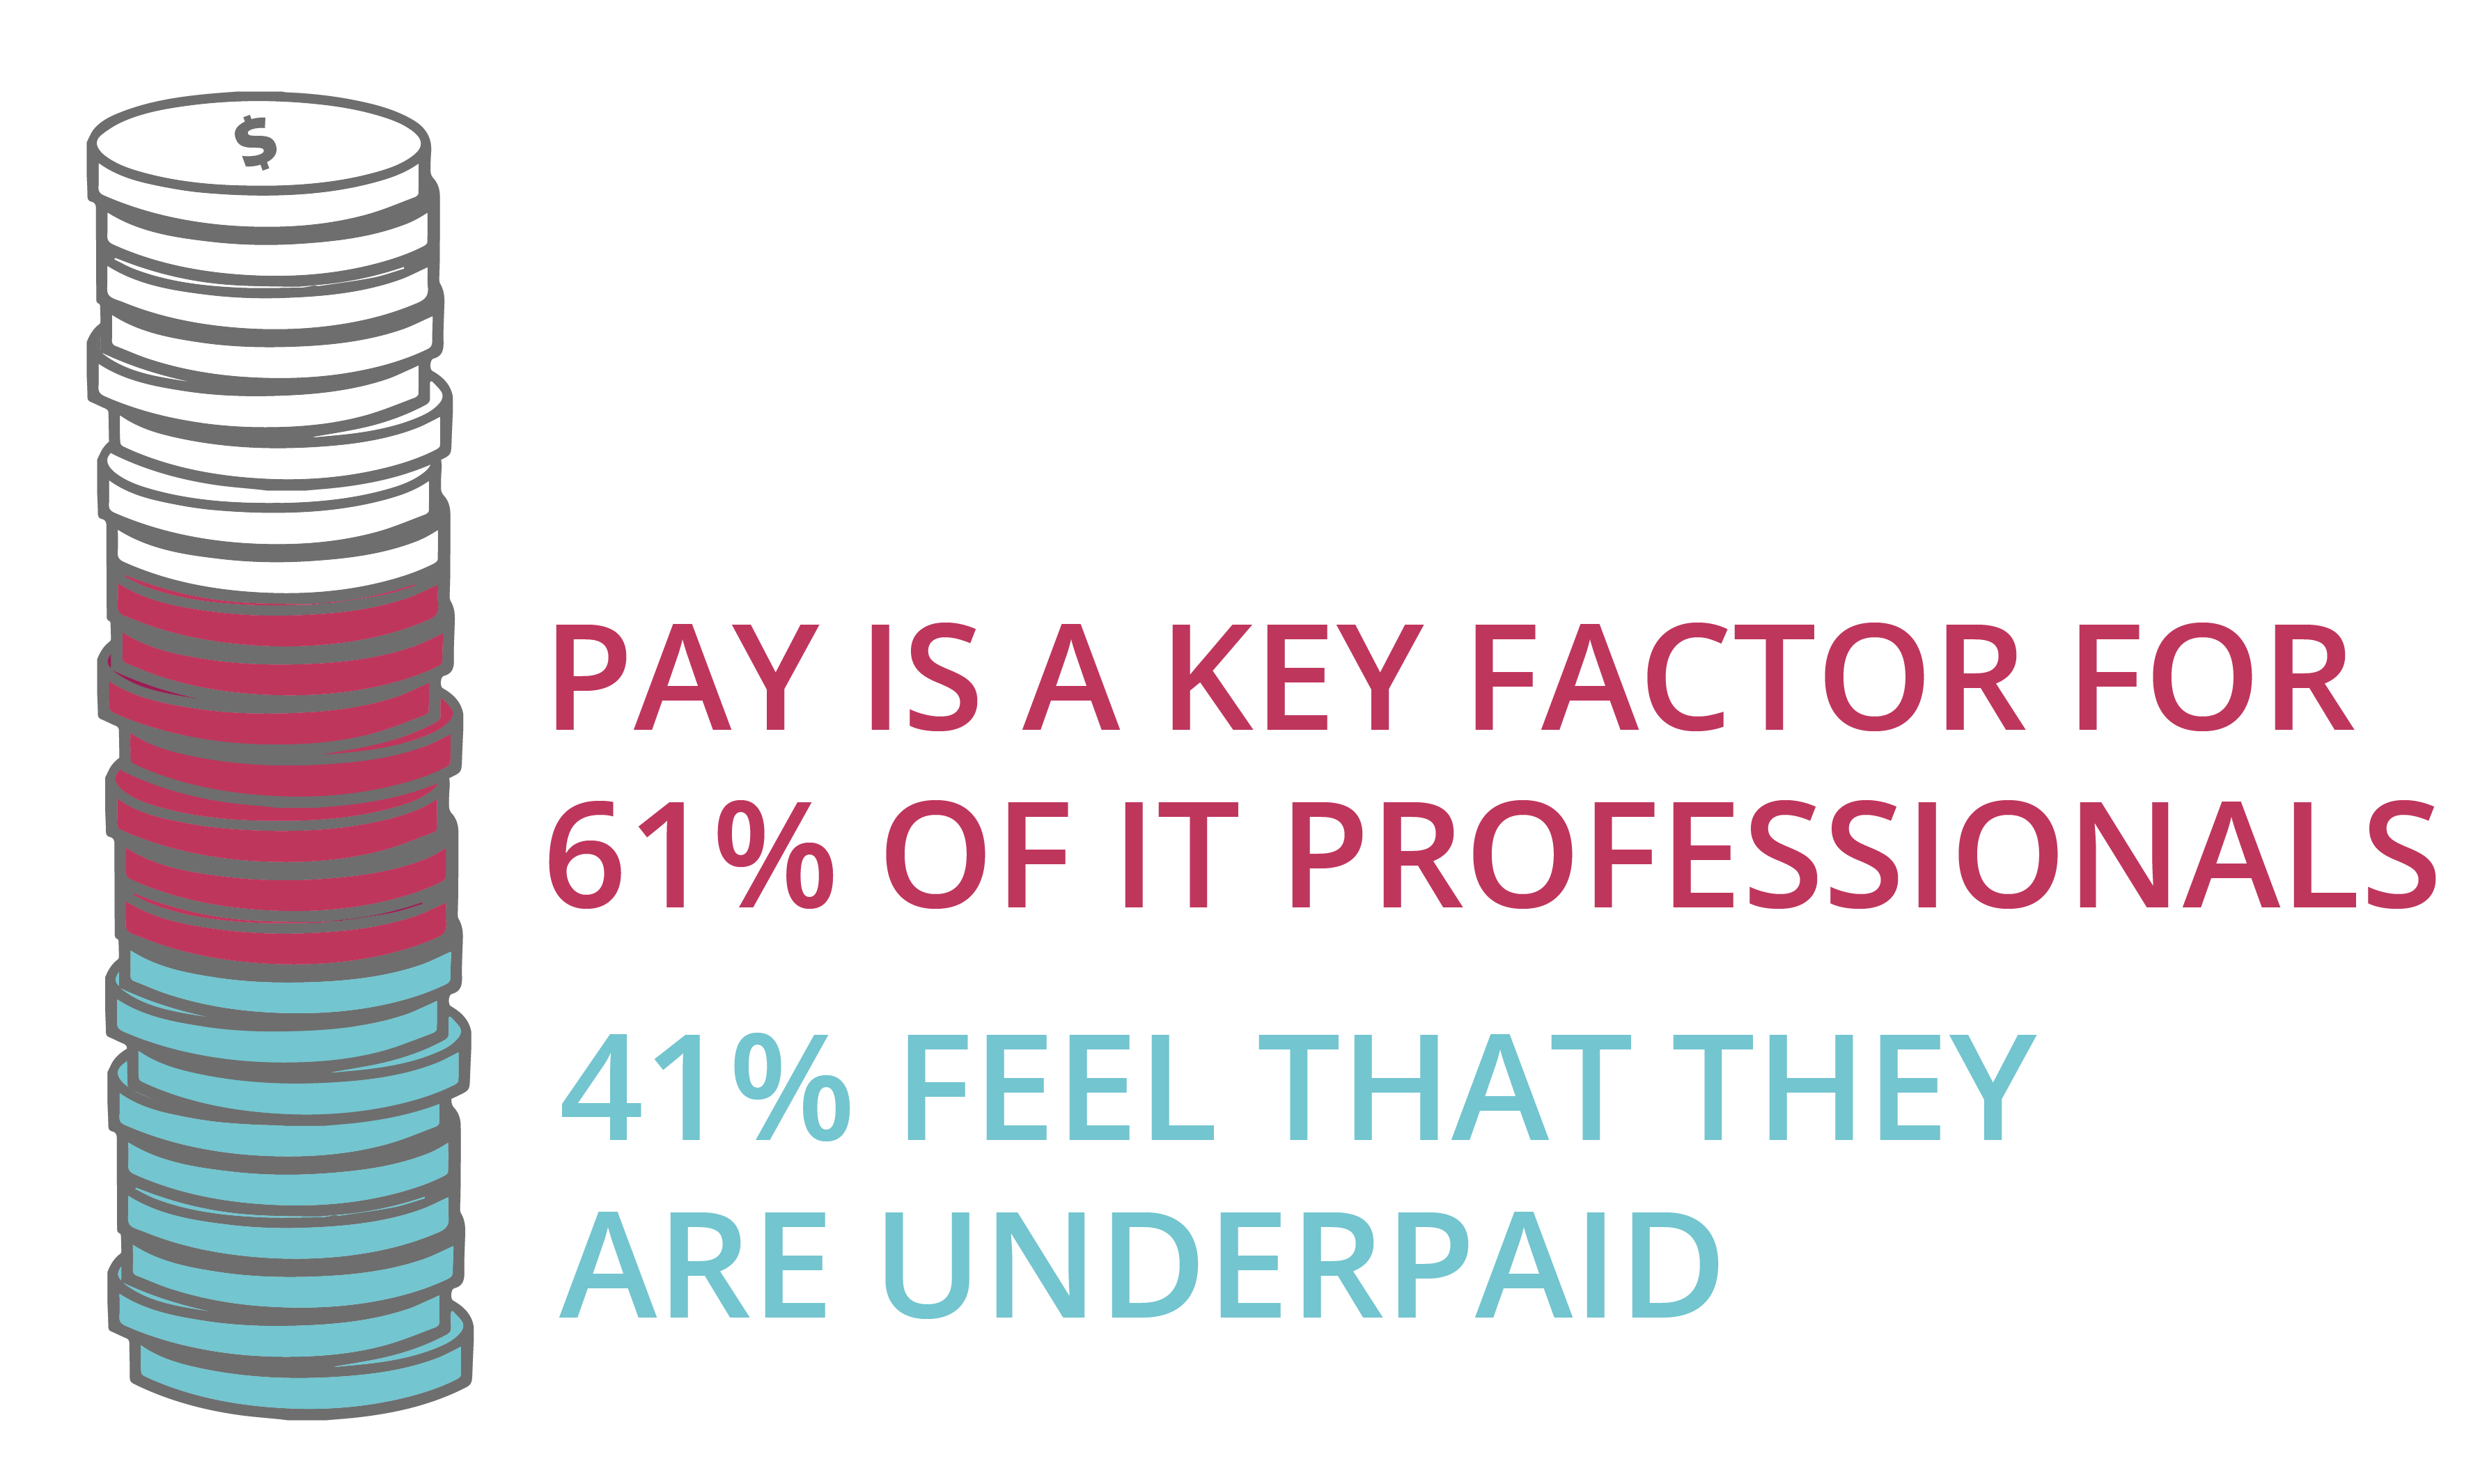 Pay is still a key factor for 61% of professionals - 41% still feel that they are underpaid